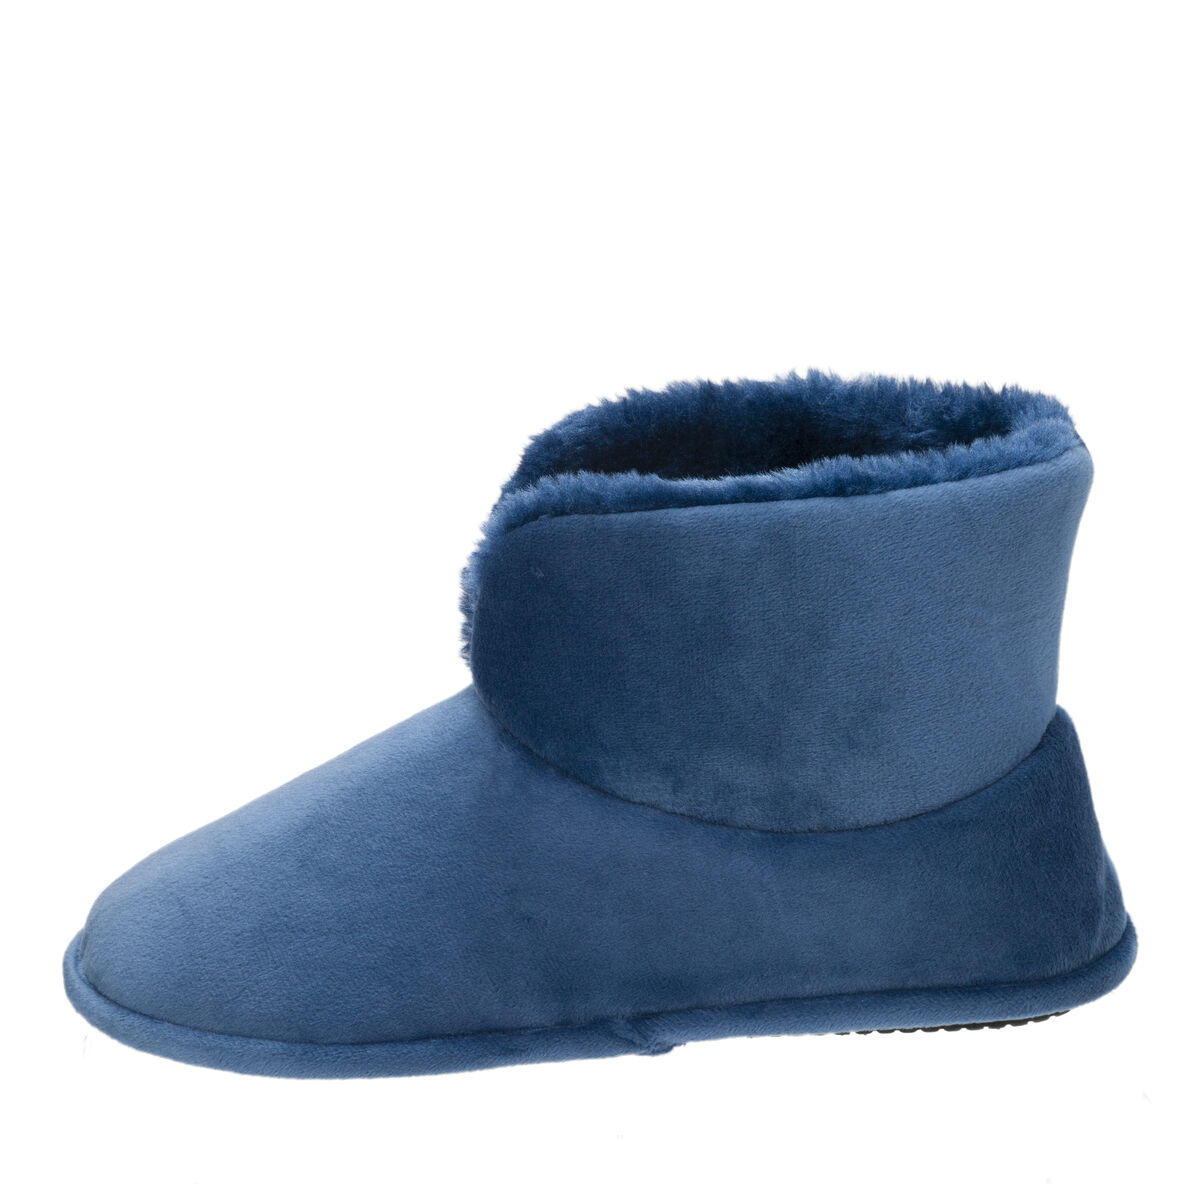 Women's Velour Bootie Slipper